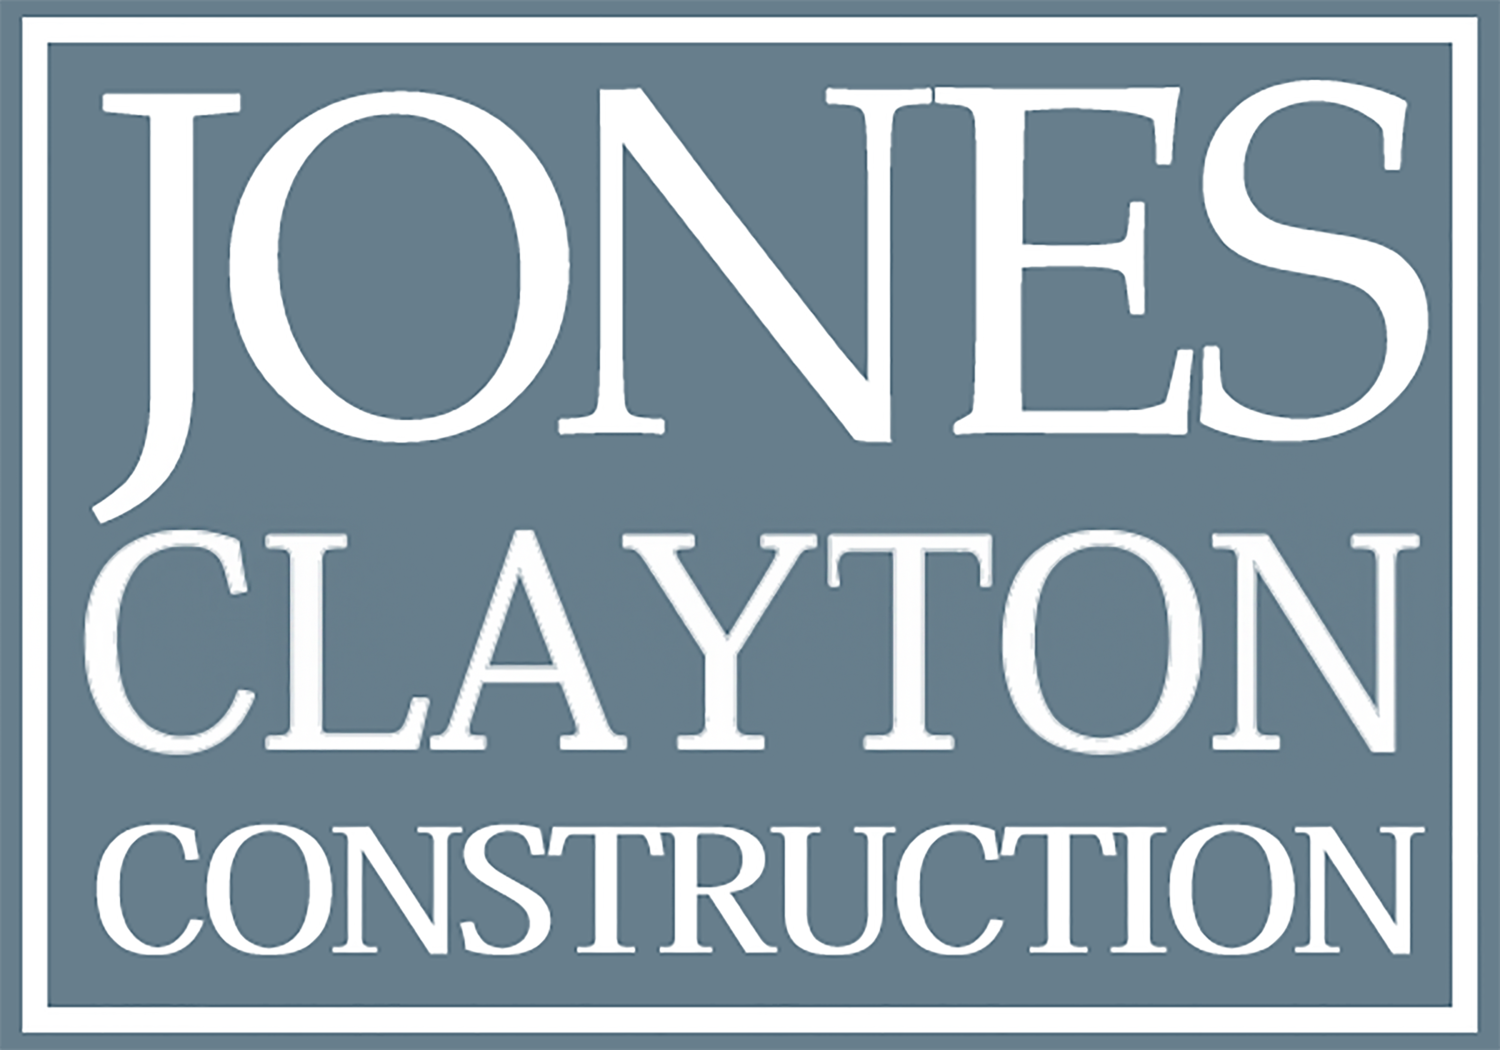 Jones Clayton Construction